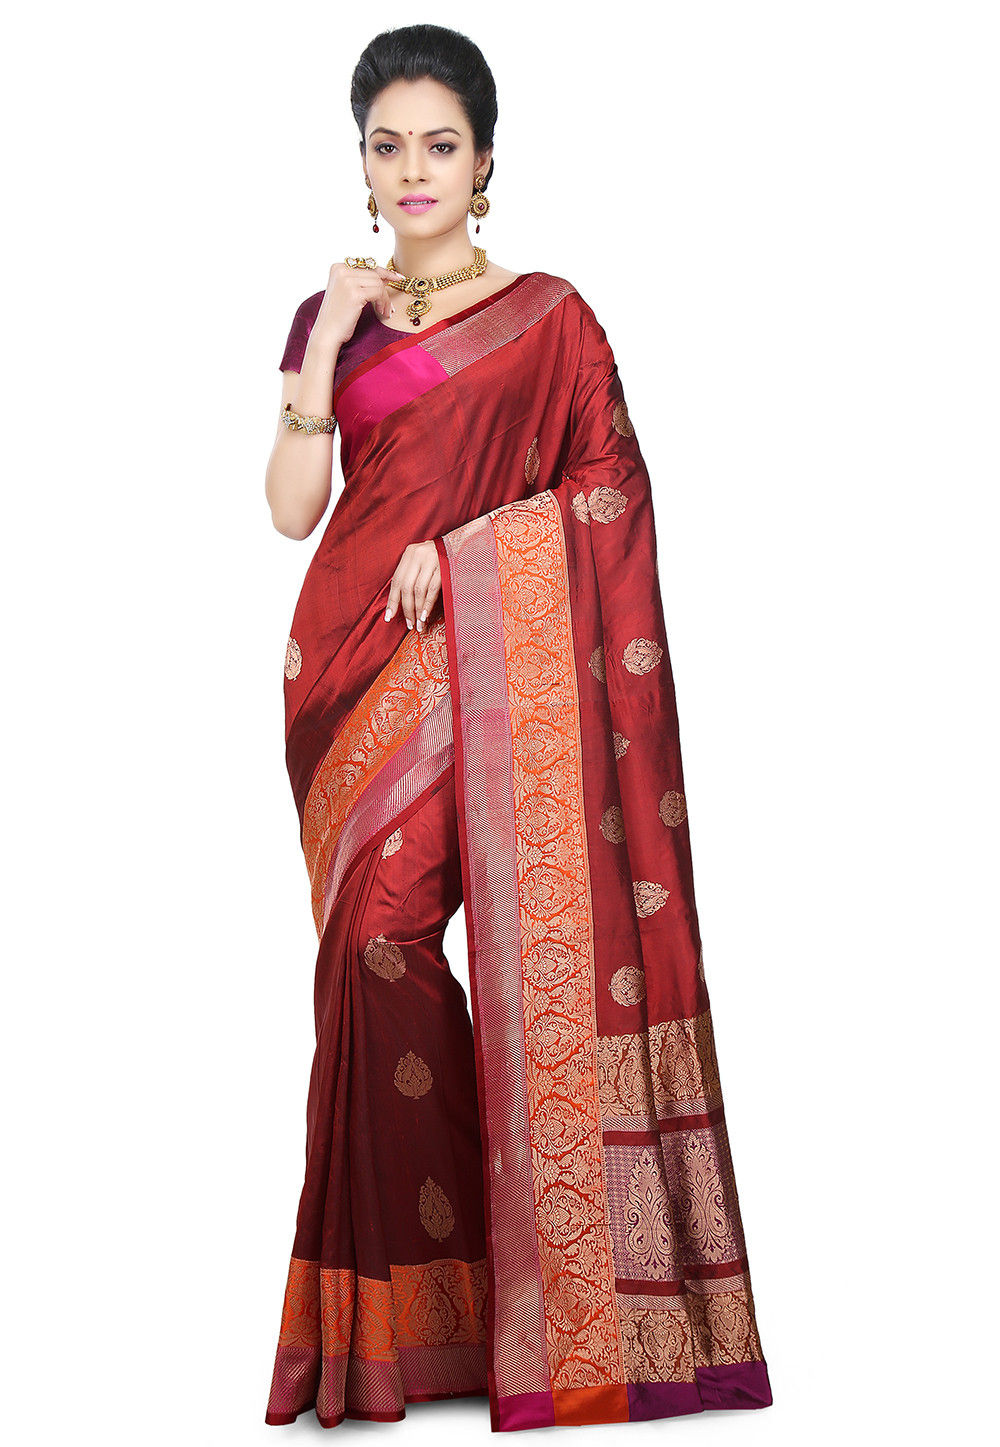 Banarasi Pure Katan Silk Handloom Saree in Maroon